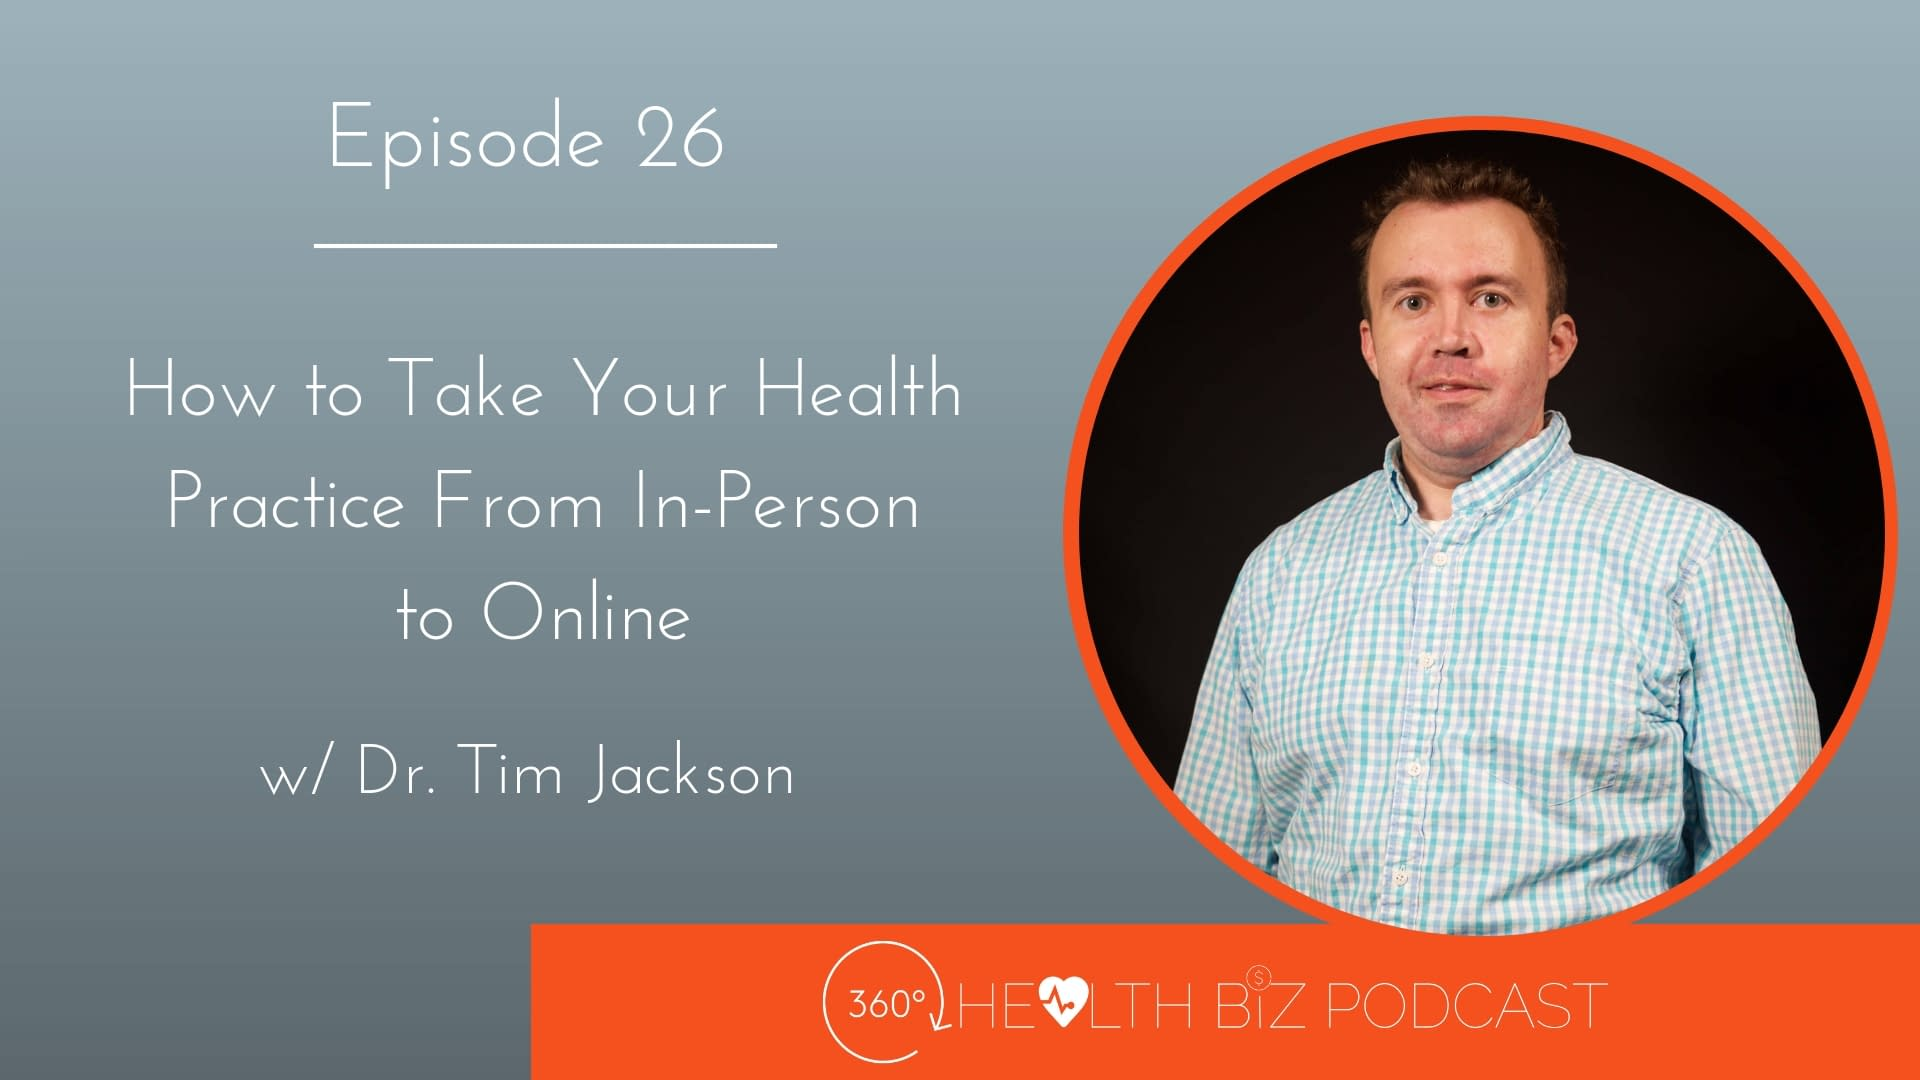 How to Take Your Health Practice From In-Person to Online